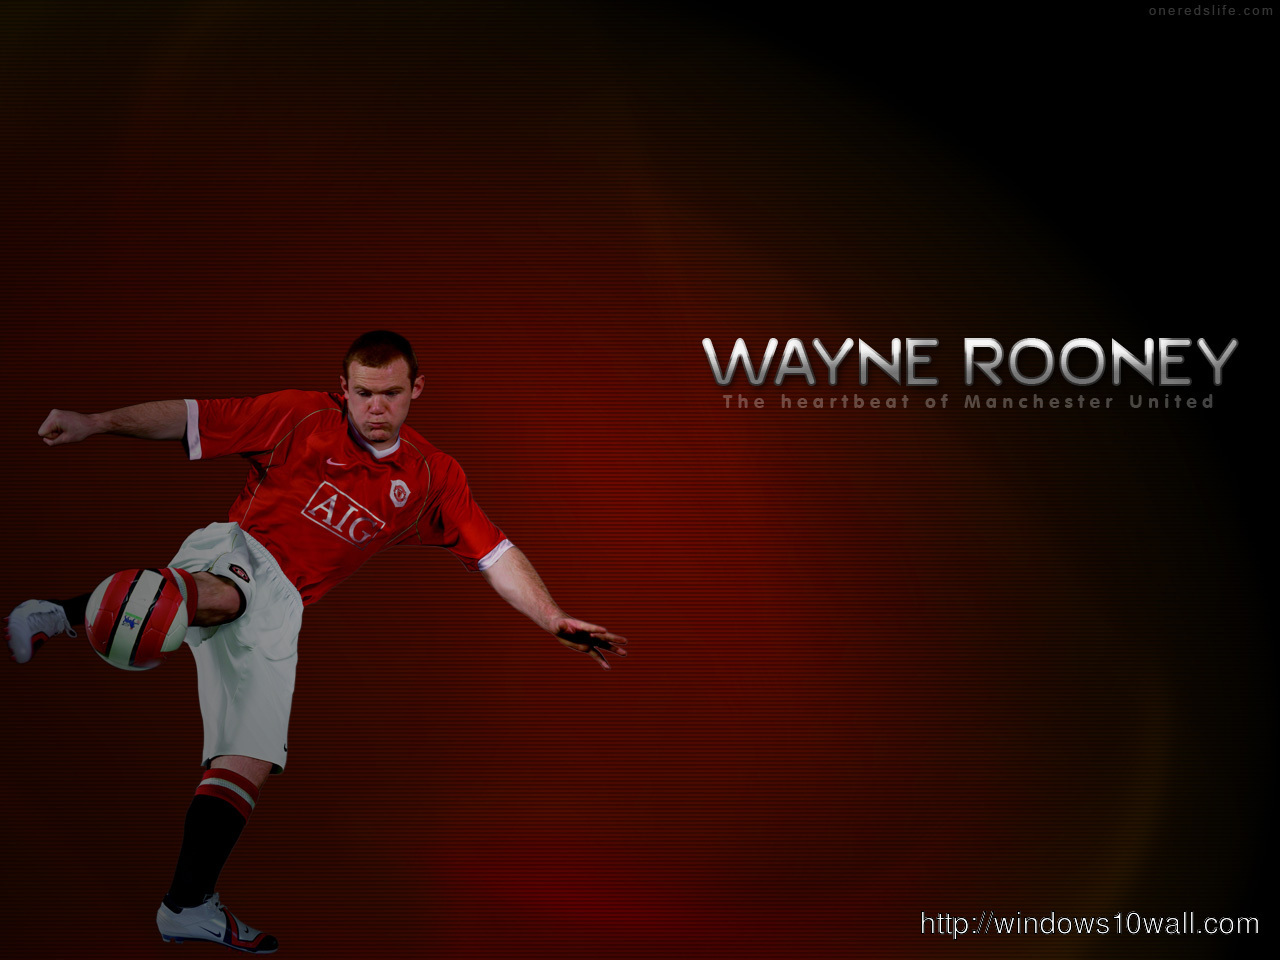 Wayne Rooney World Cup Wallpaper